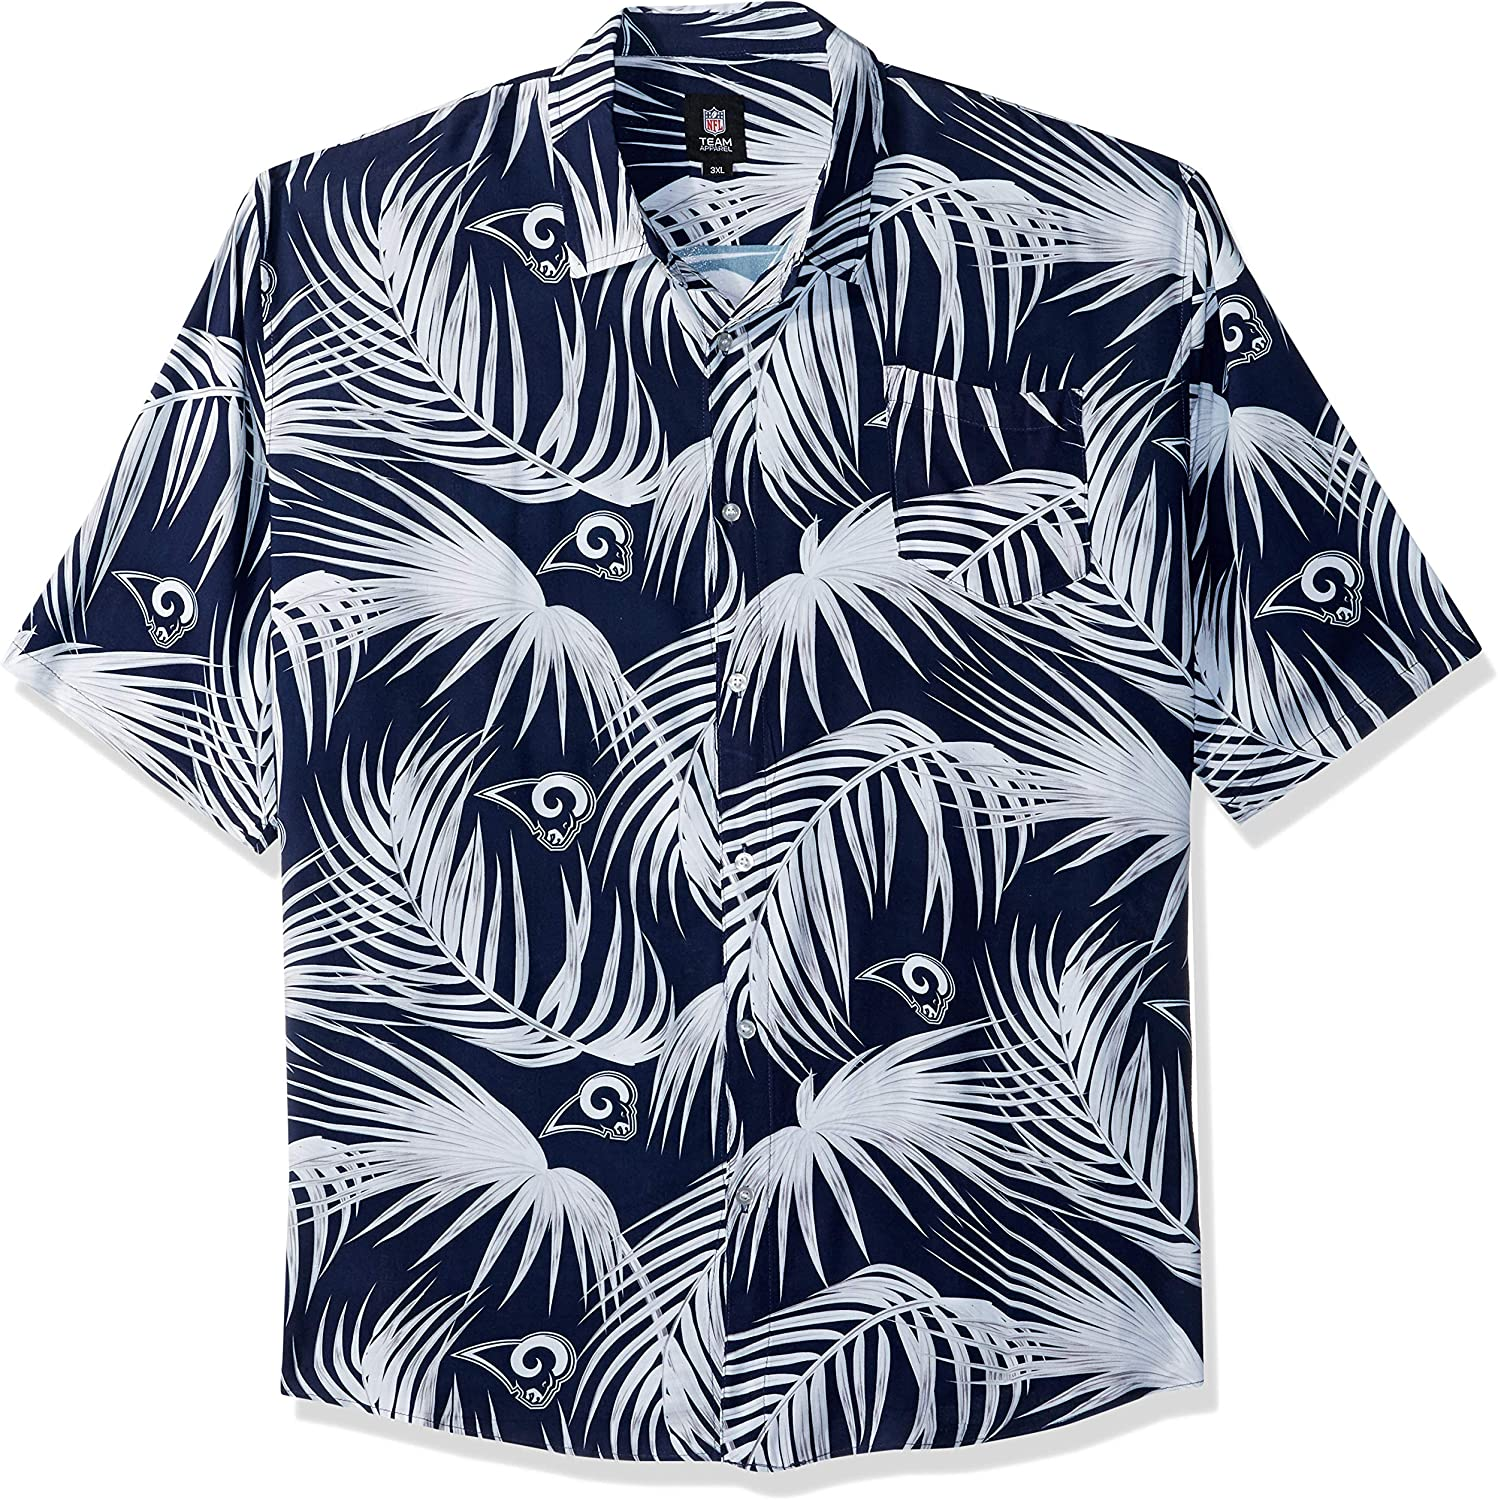 Ranking Outlet ☆ Free Shipping TOP7 FOCO Men's NFL Floral Tropical Button Shirt Up